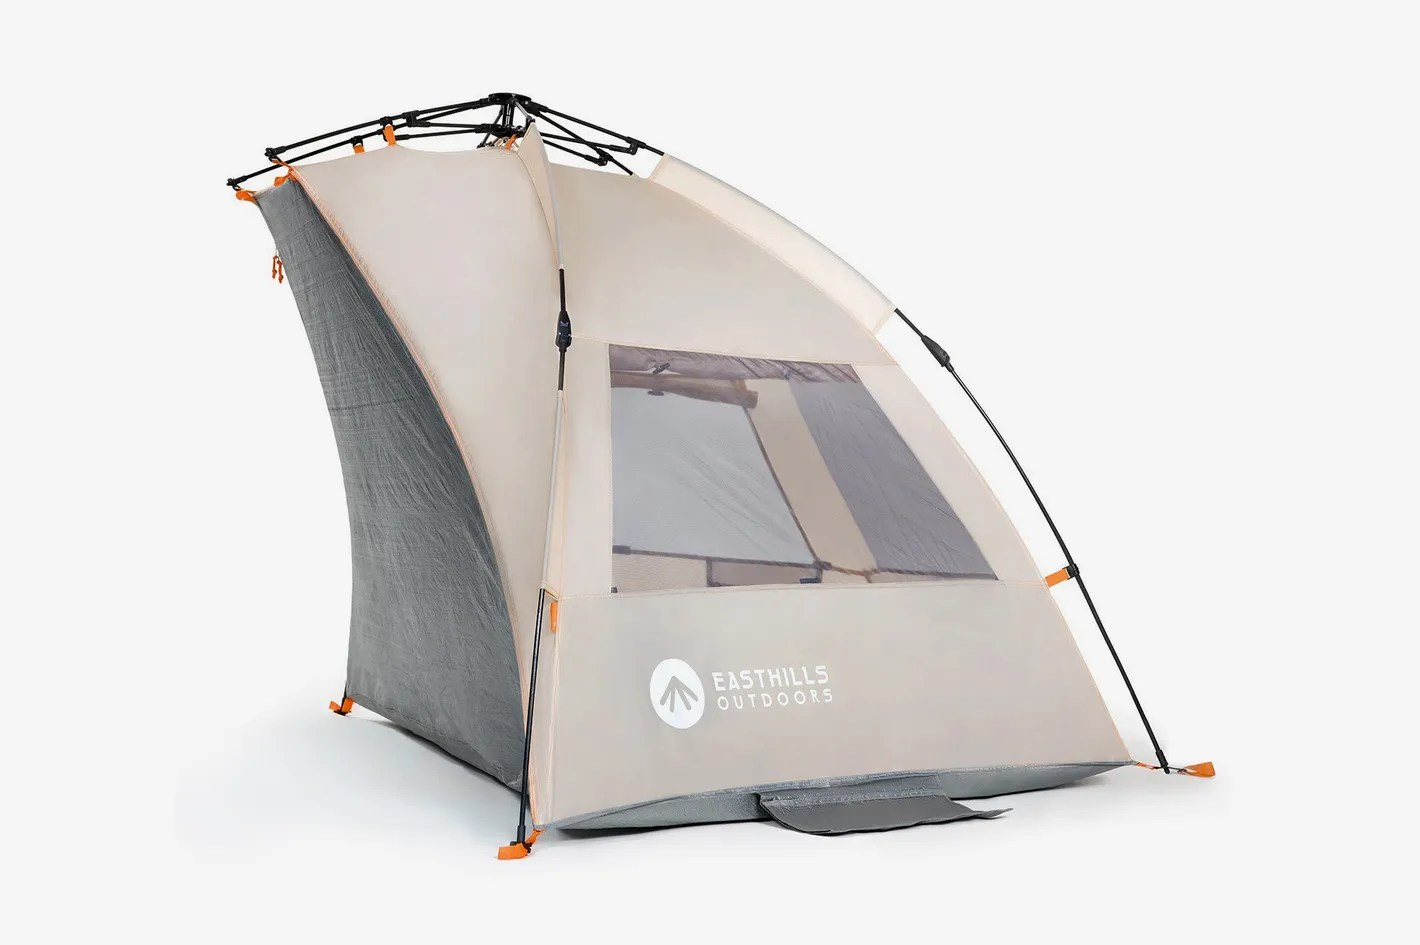 Pop Up Sun Shelter Canada Easthills Outdoors Easy Up Beach Tent